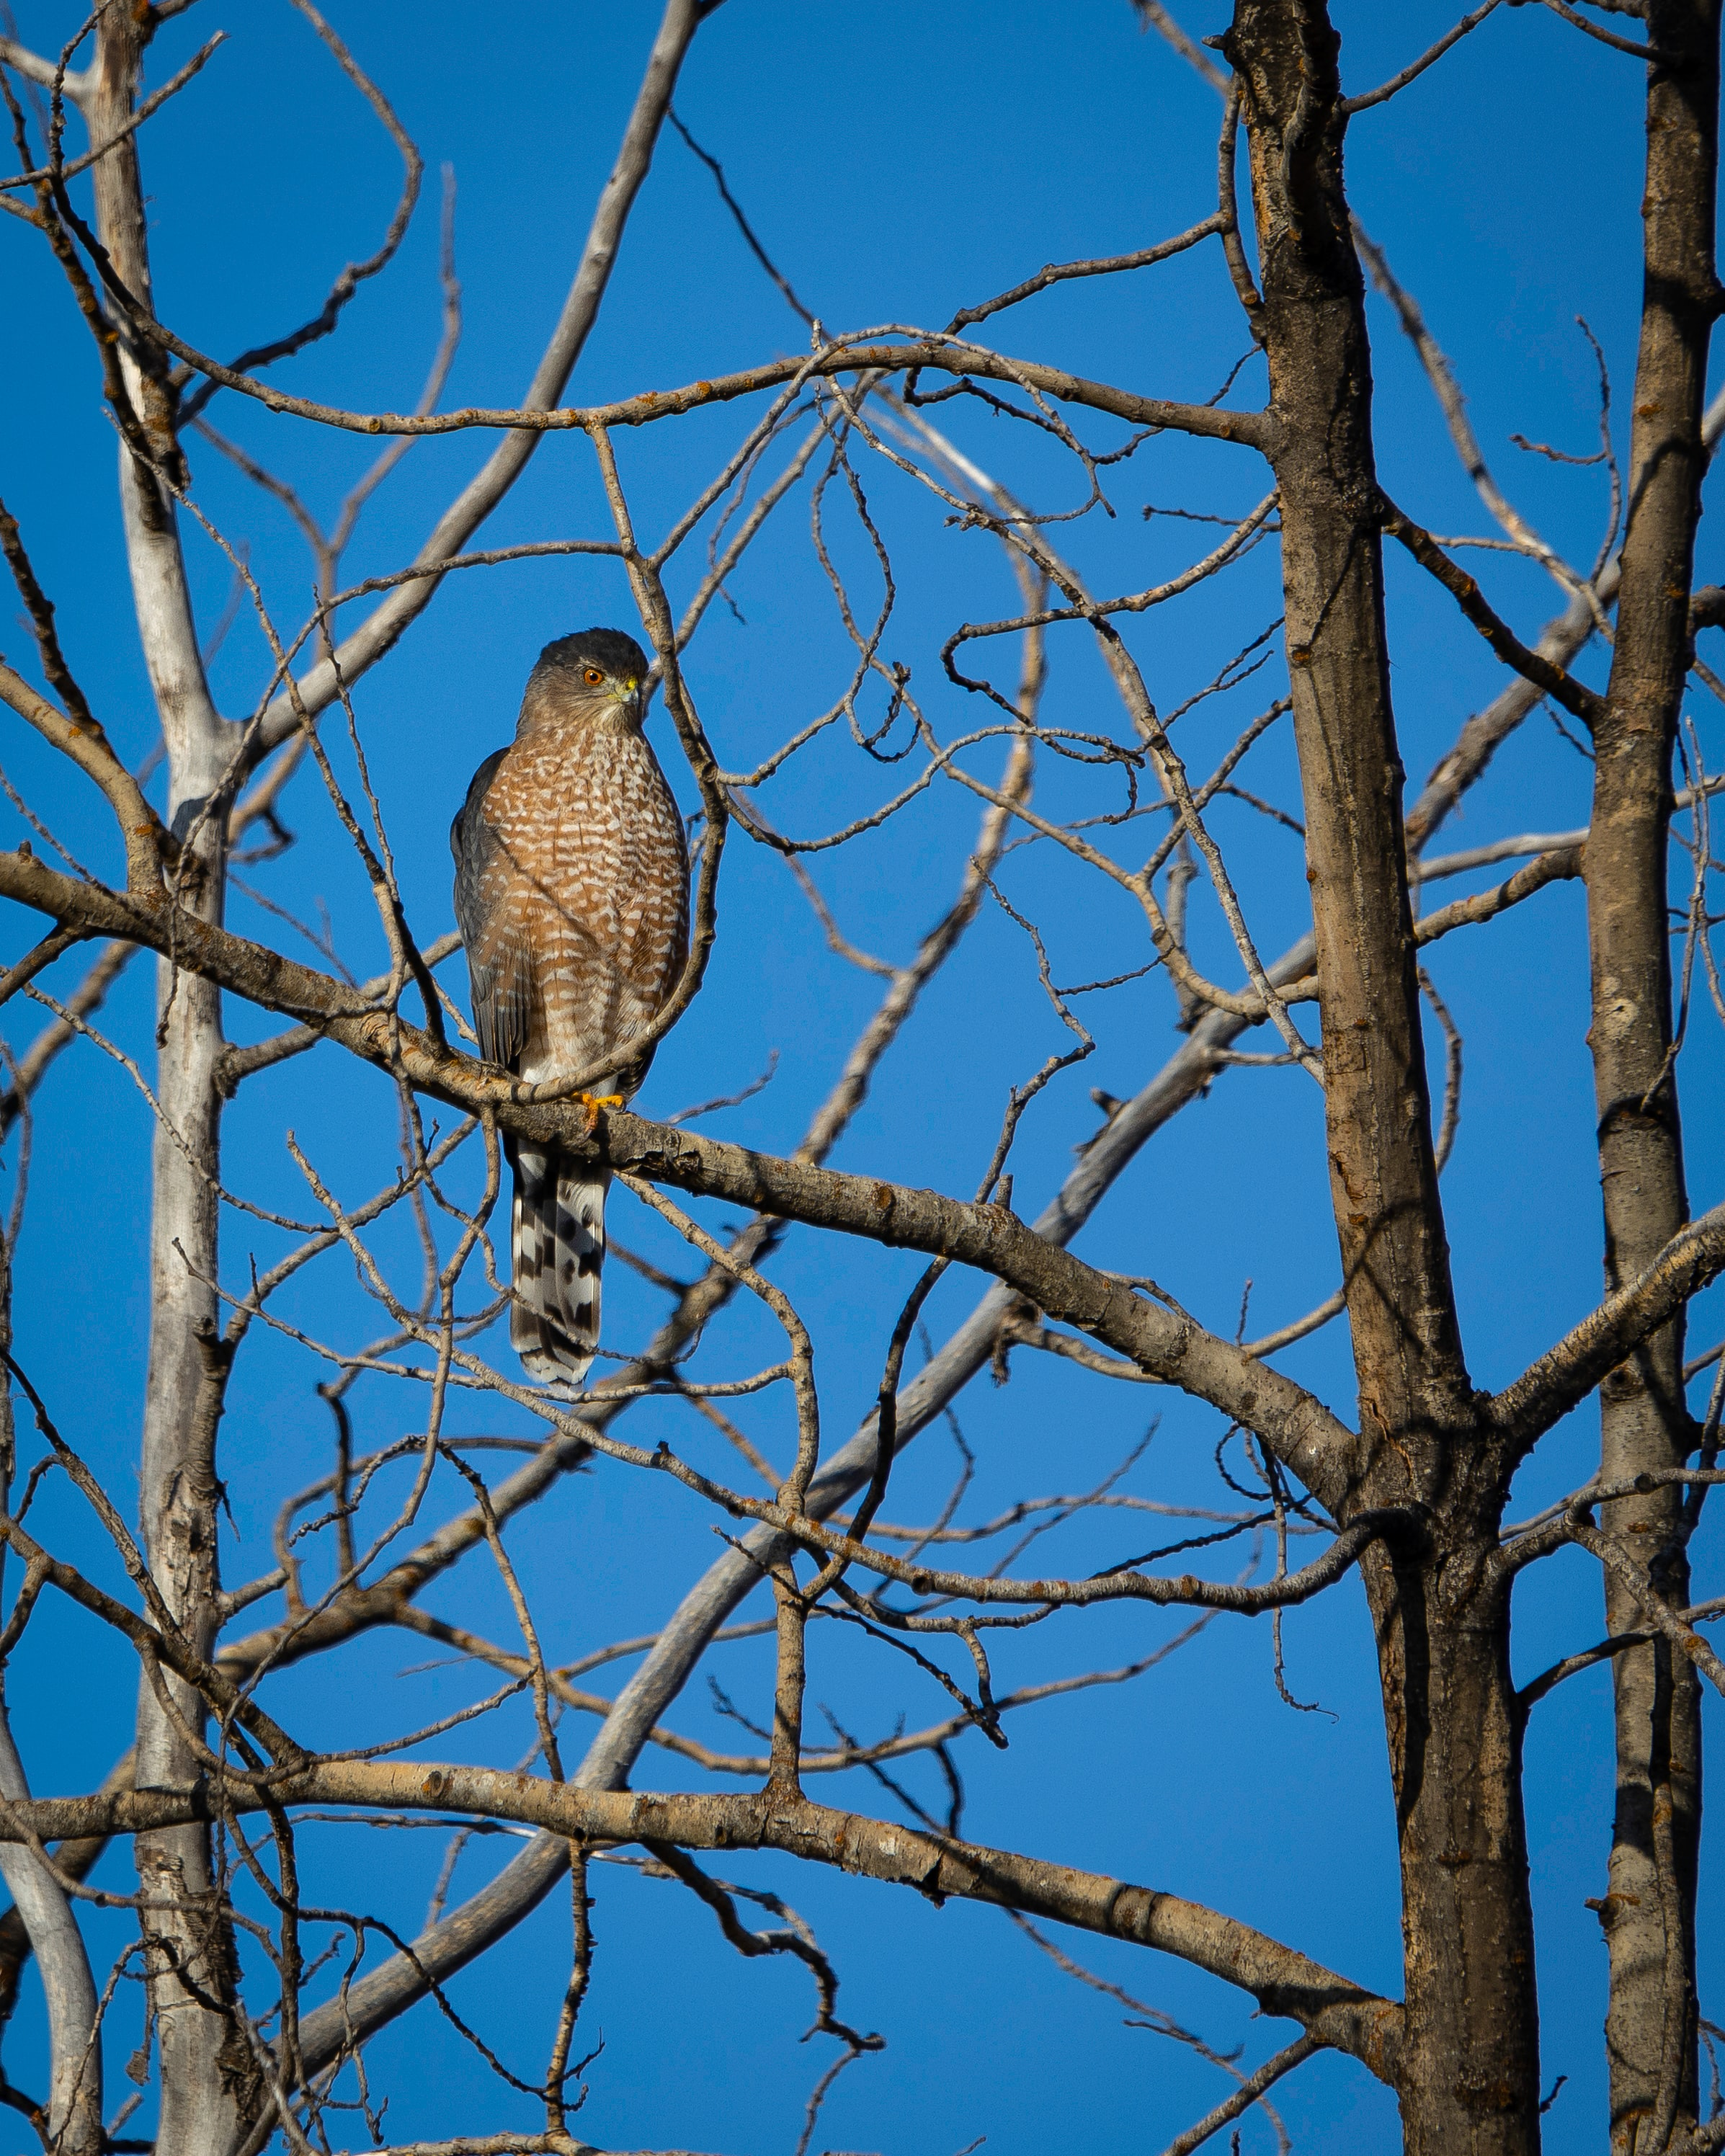 130514 download wallpaper Animals, Hawk, Bird, Predator, Wood, Tree screensavers and pictures for free